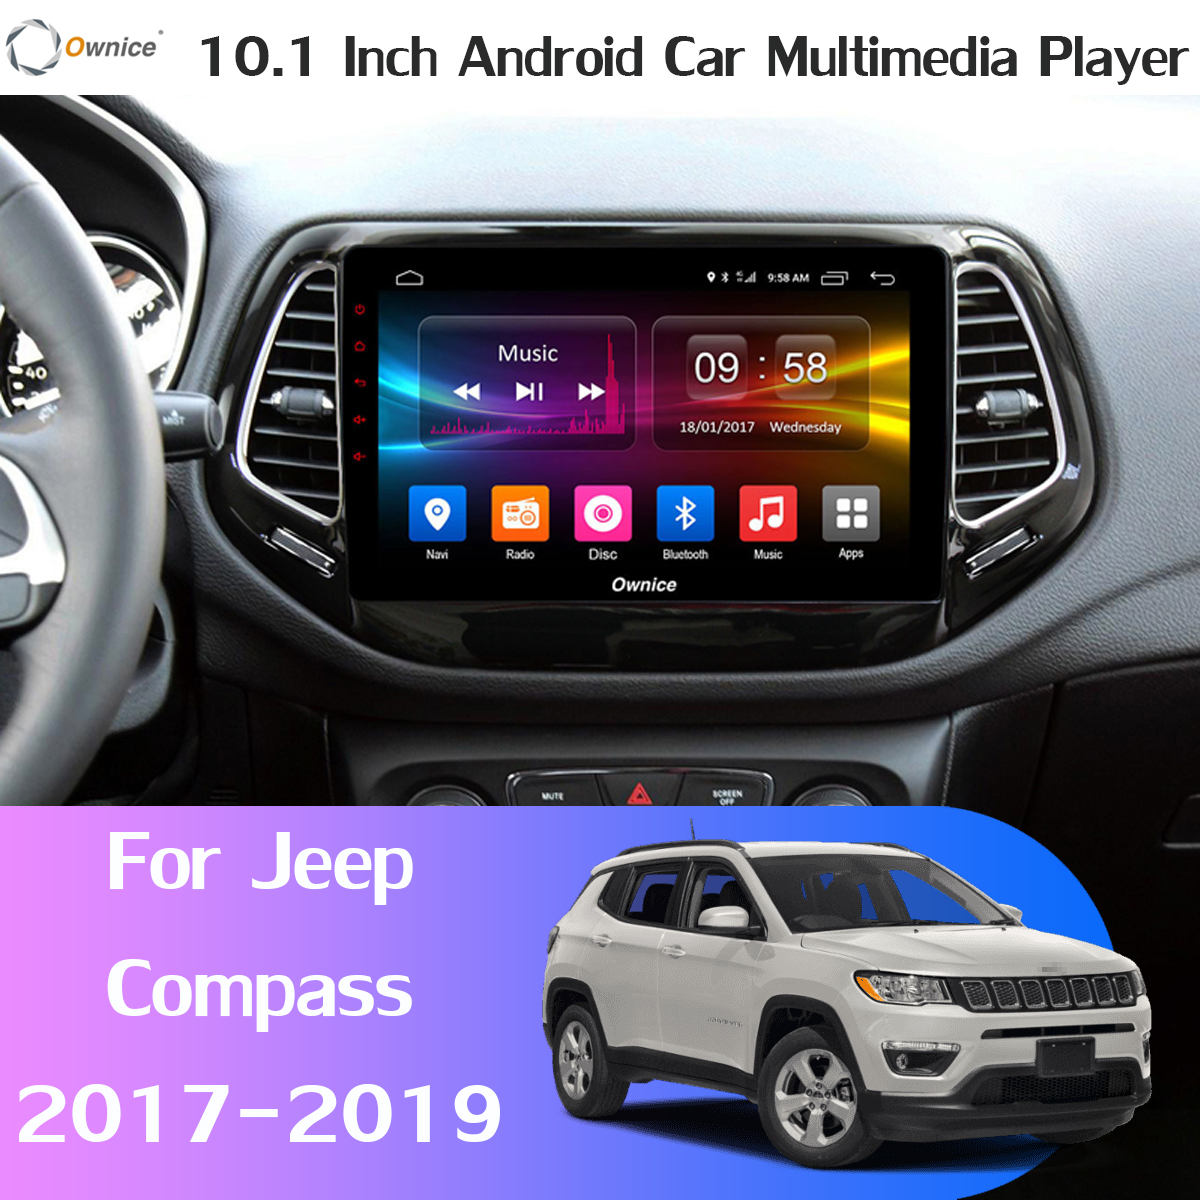 360° Panoramic 4G+64G Android 9.0 Car Multimedia Player for Jeep Compass 2017 2018 2019 Car GPS Navigation Radio CarPlay SPDIF